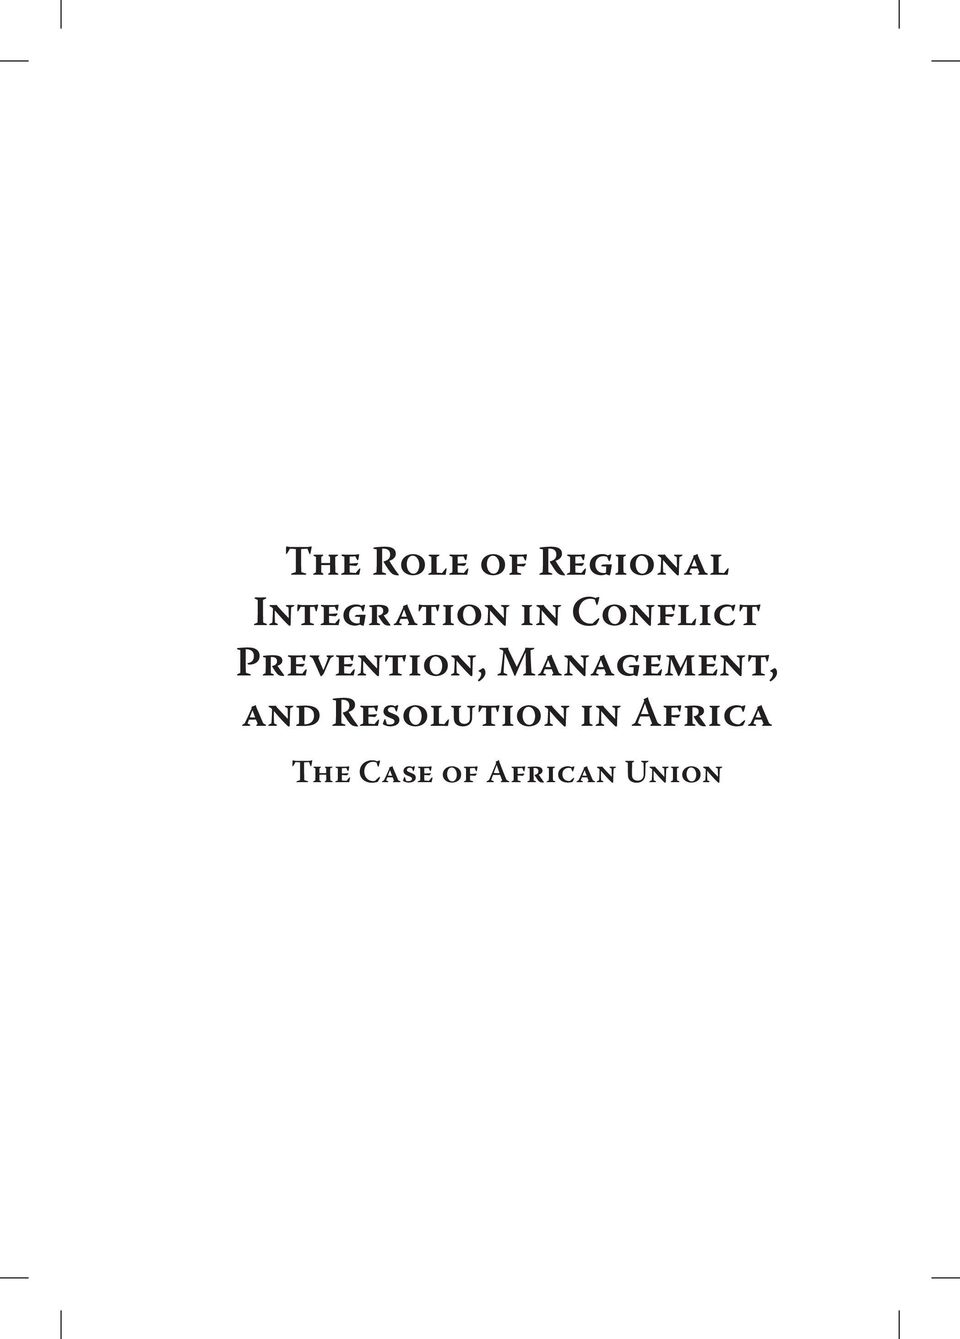 Prevention, Management, and